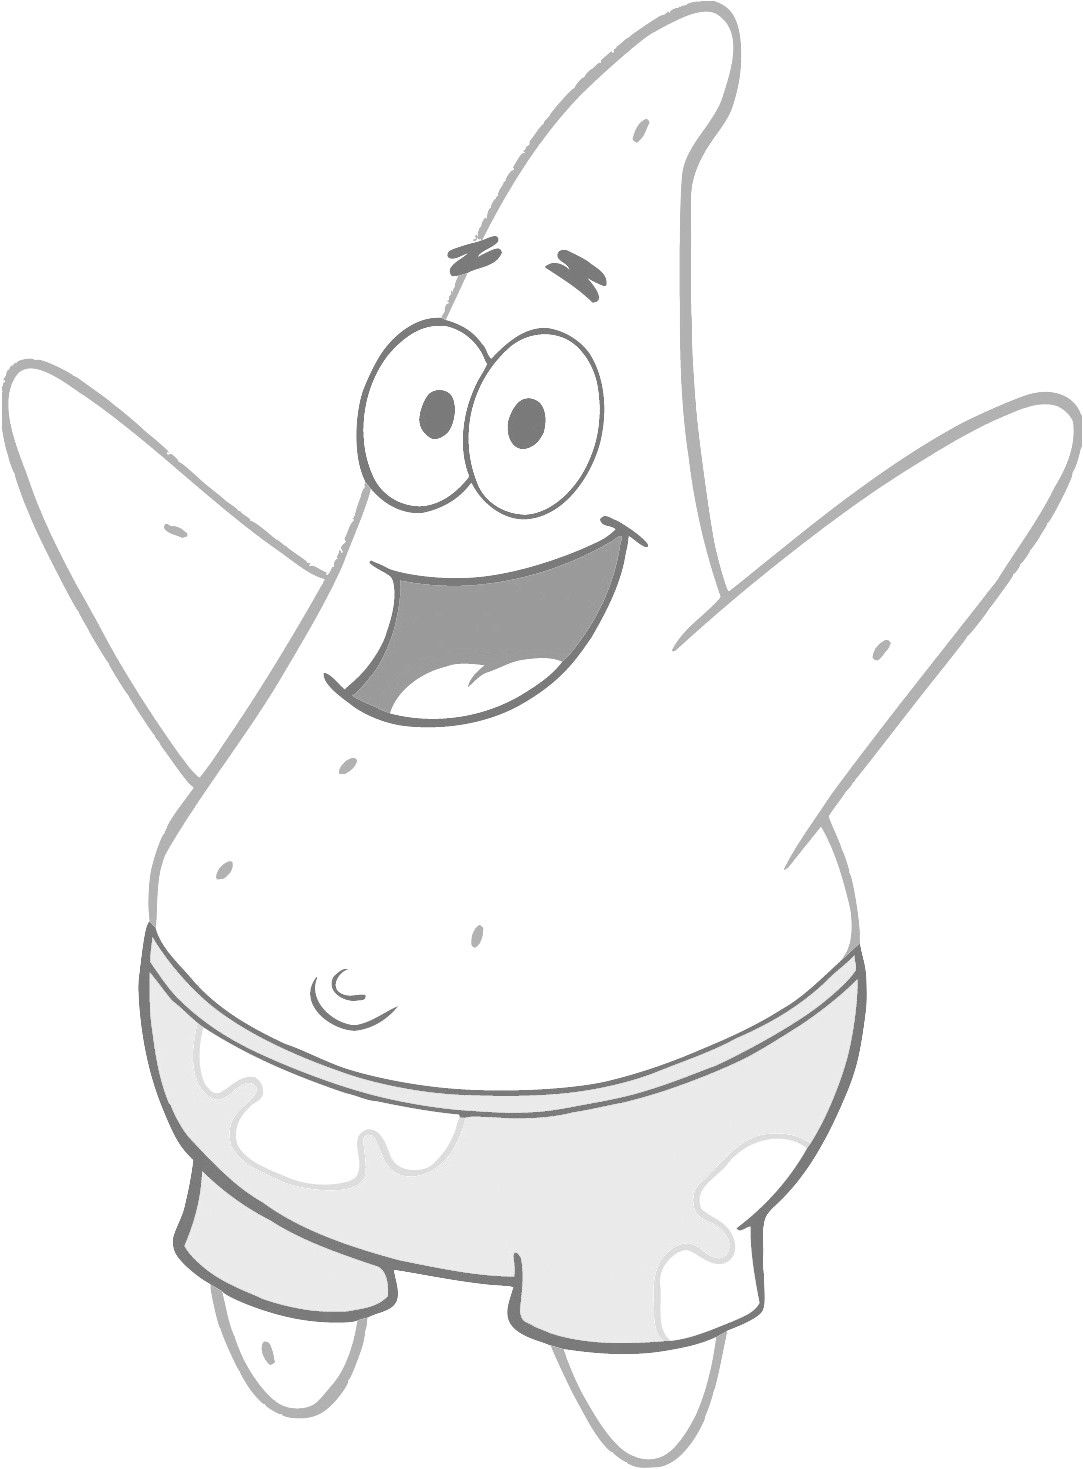 Patrick Star Coloring Page Star Coloring Pages Coloring Pages